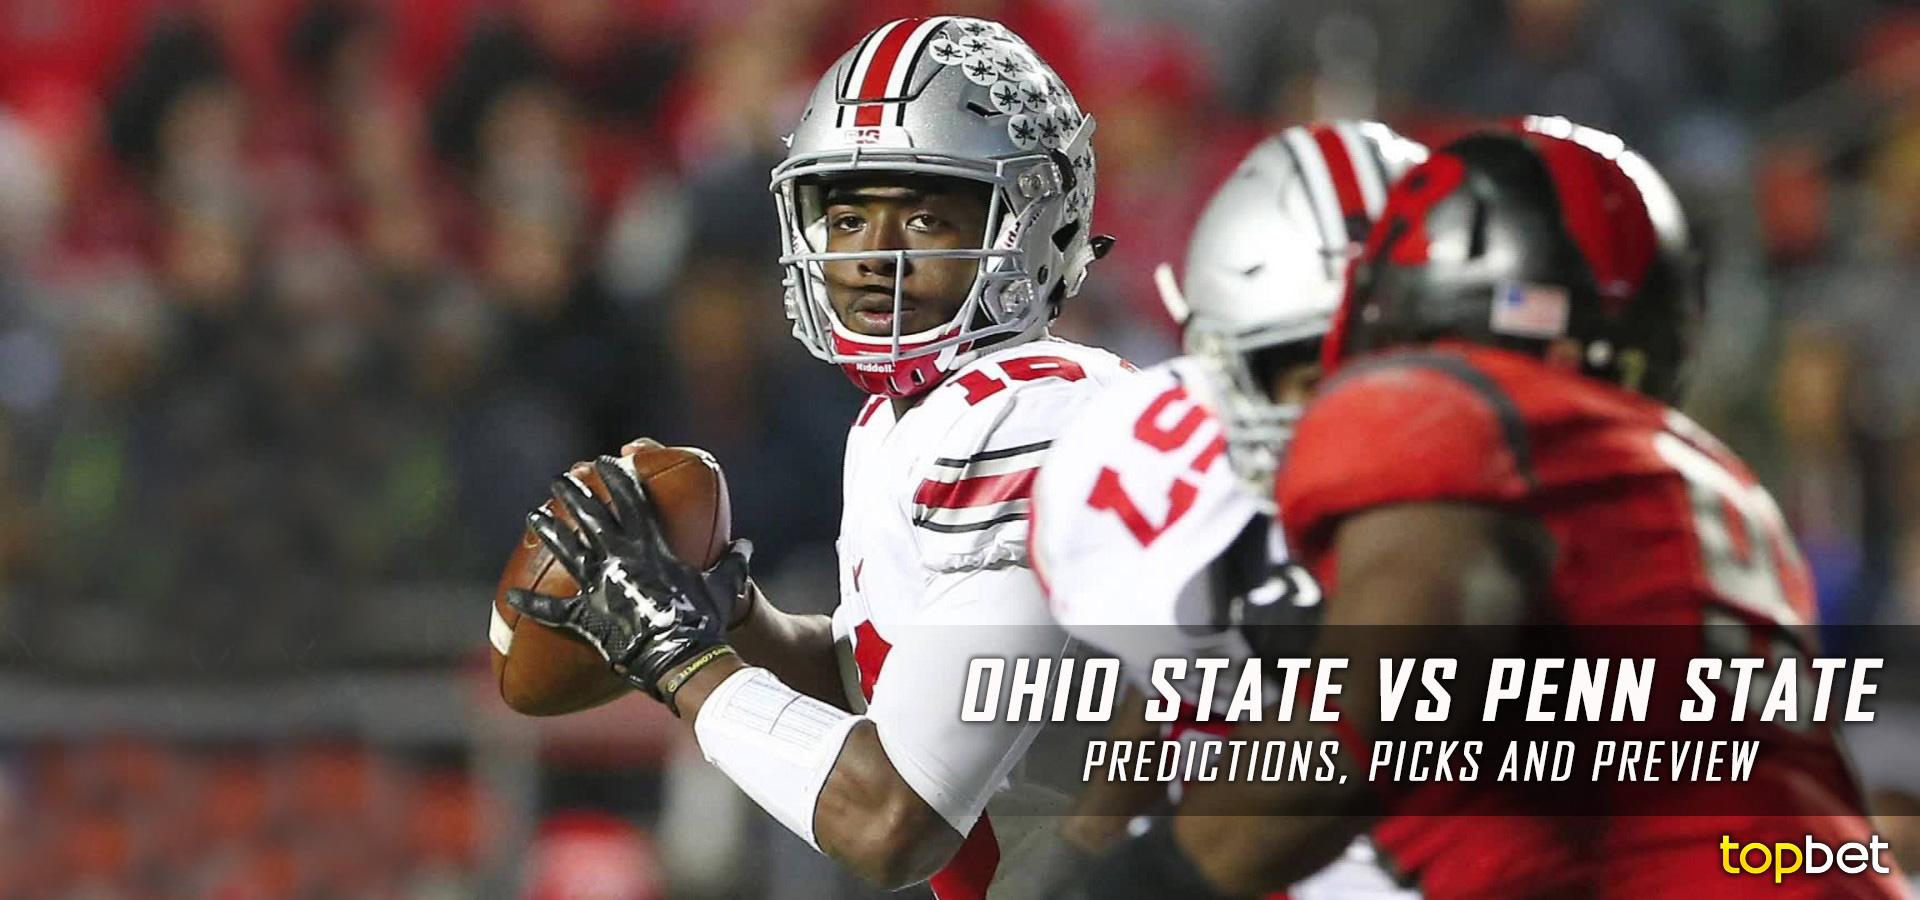 ohio state - penn state football game odds